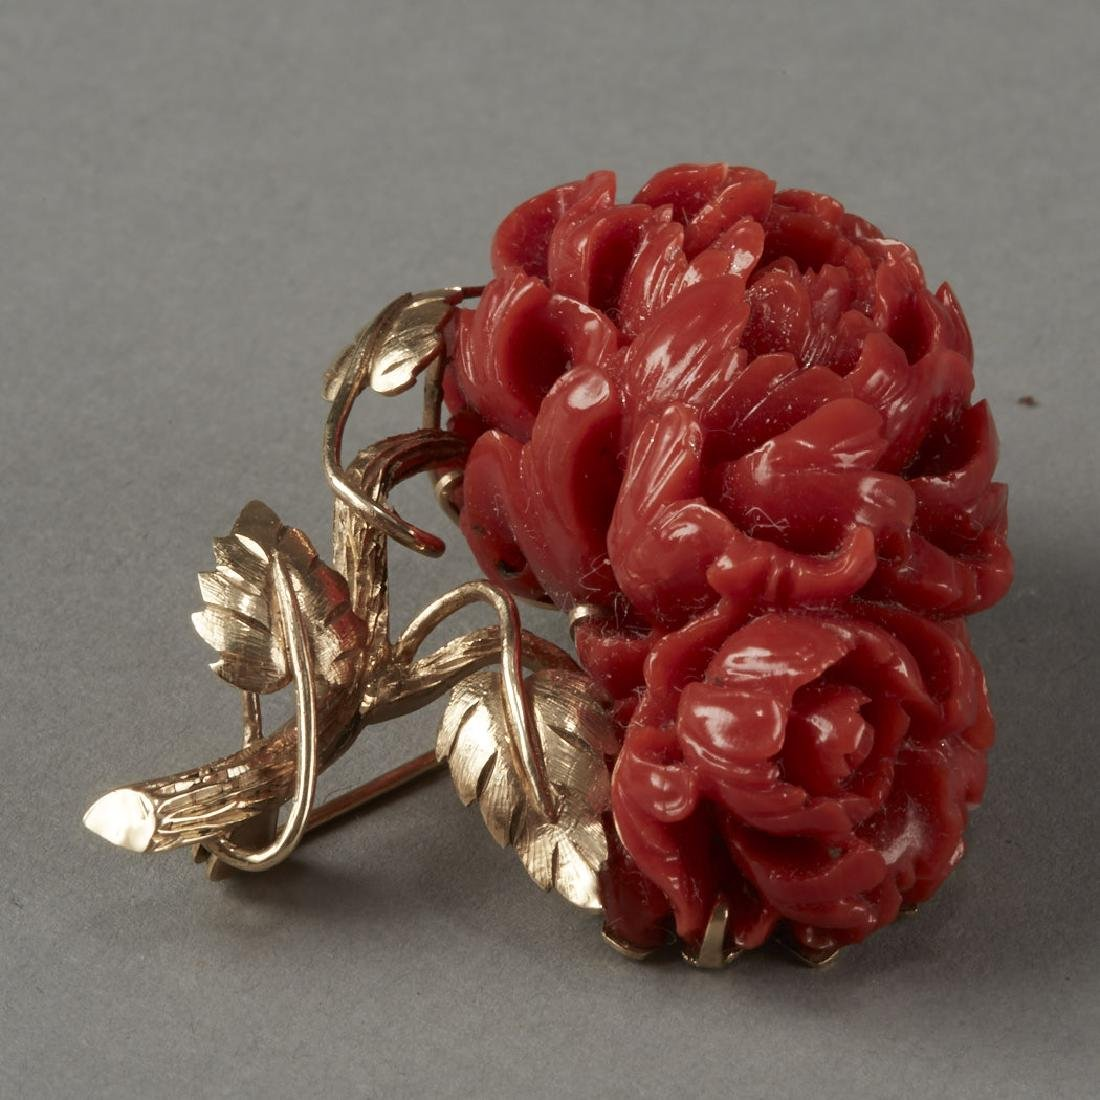 Gold & Coral Chrysanthemum Pin or Brooch - 5